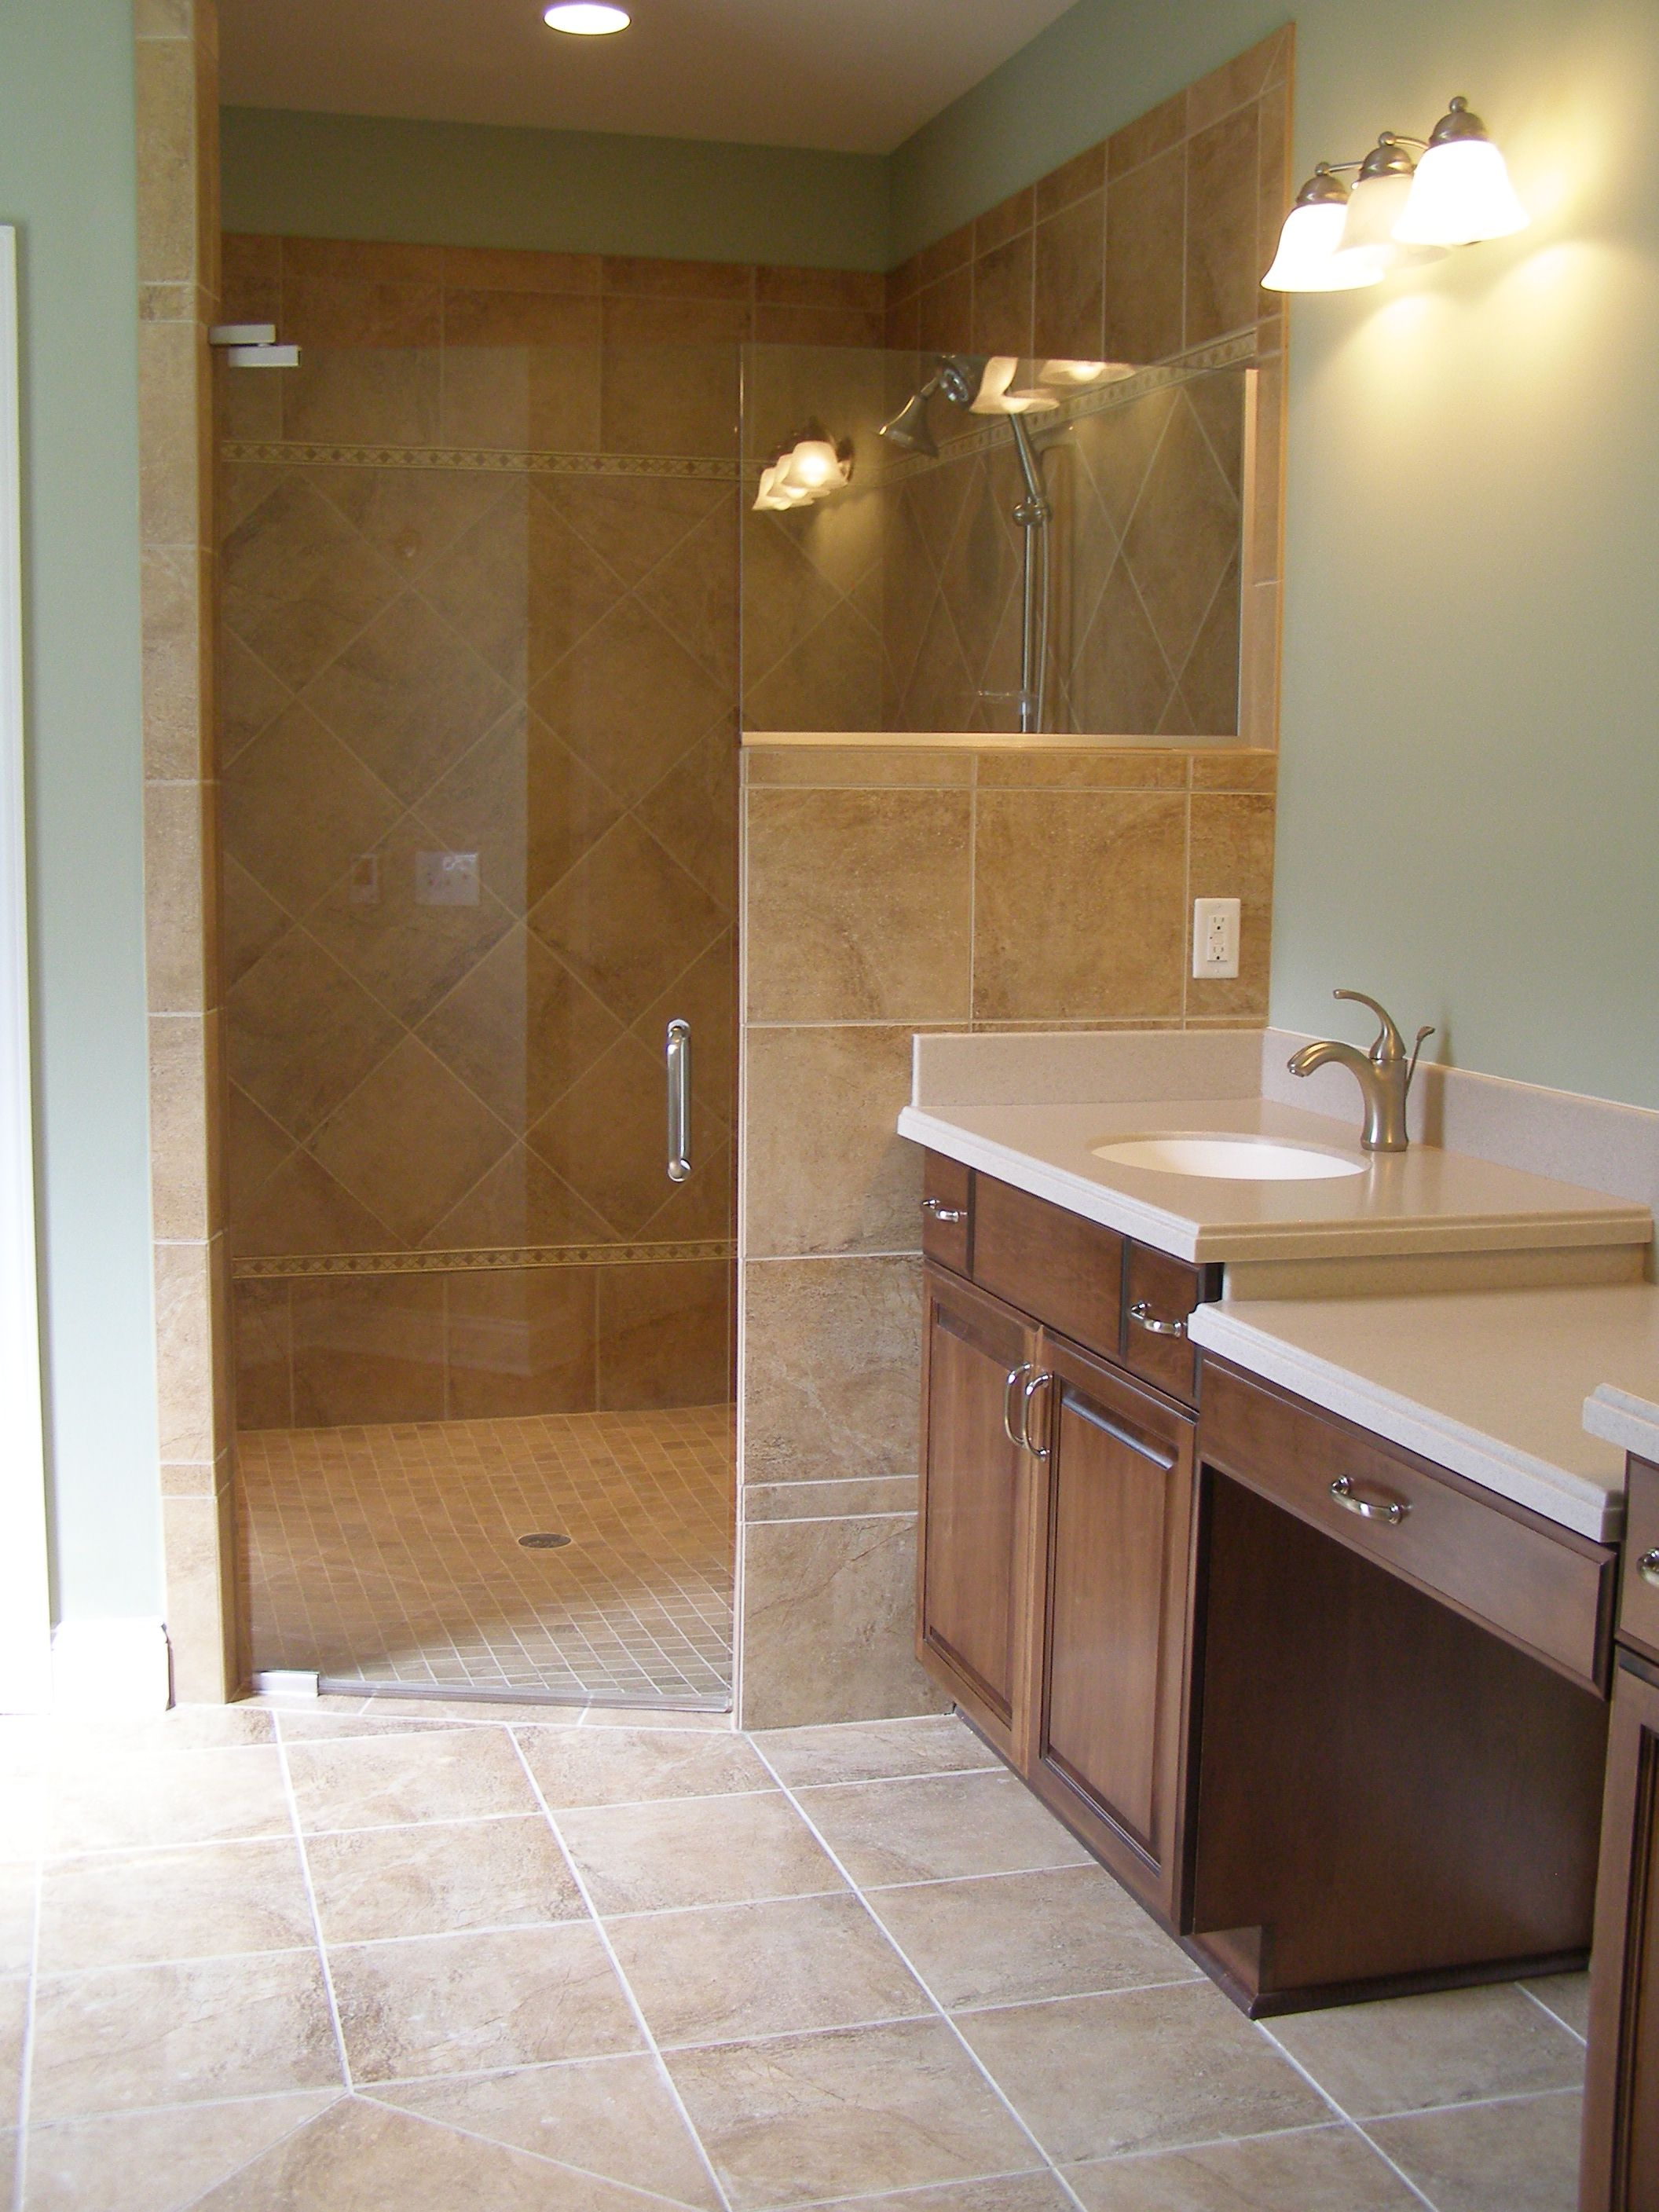 The Home Designer Ceramic Tile Walk In Shower Designs Walk Showers